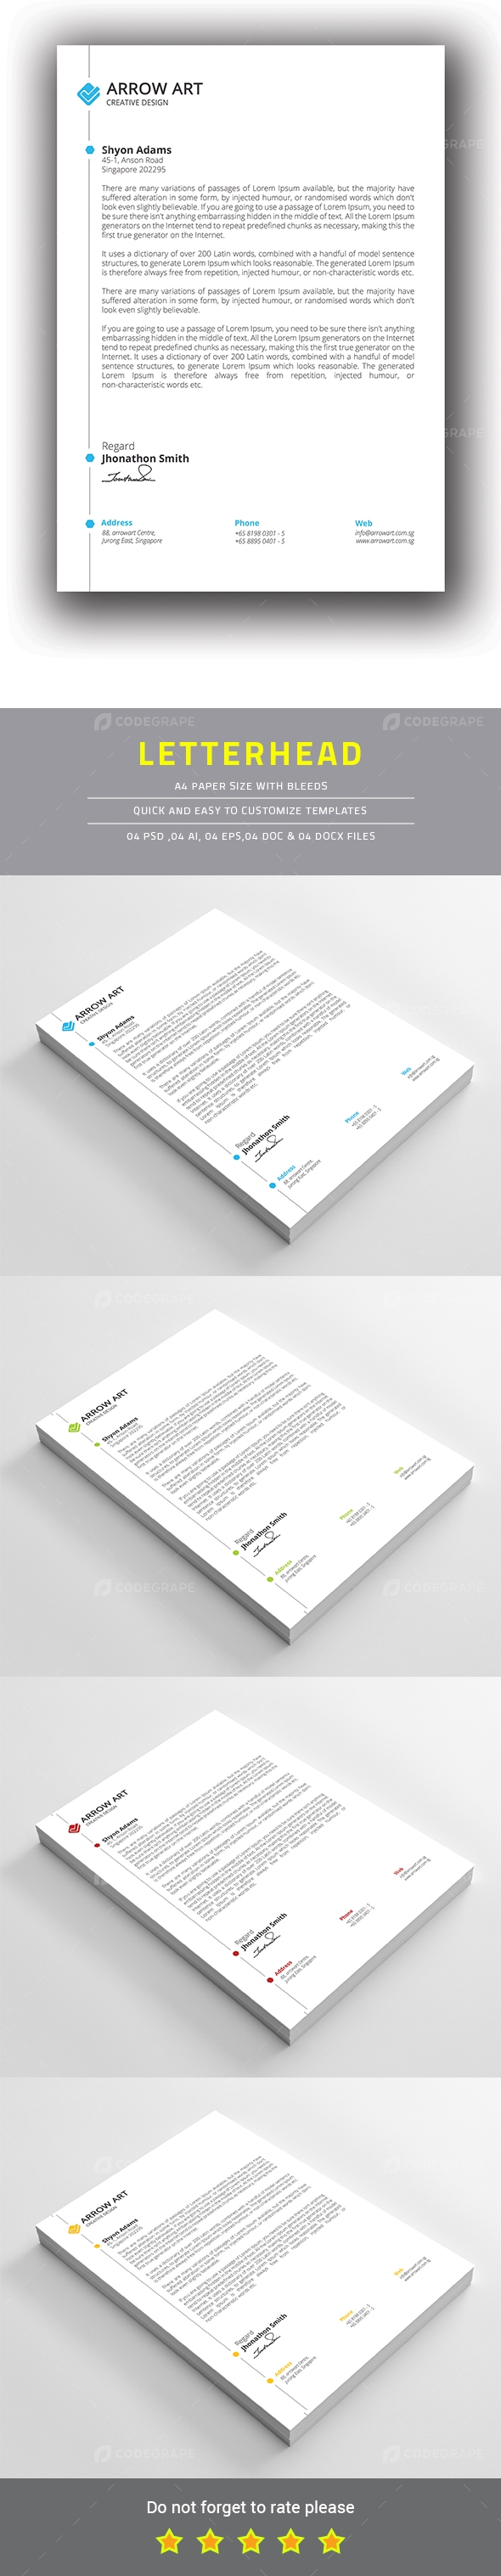 how to make a letterhead in adobe photoshop